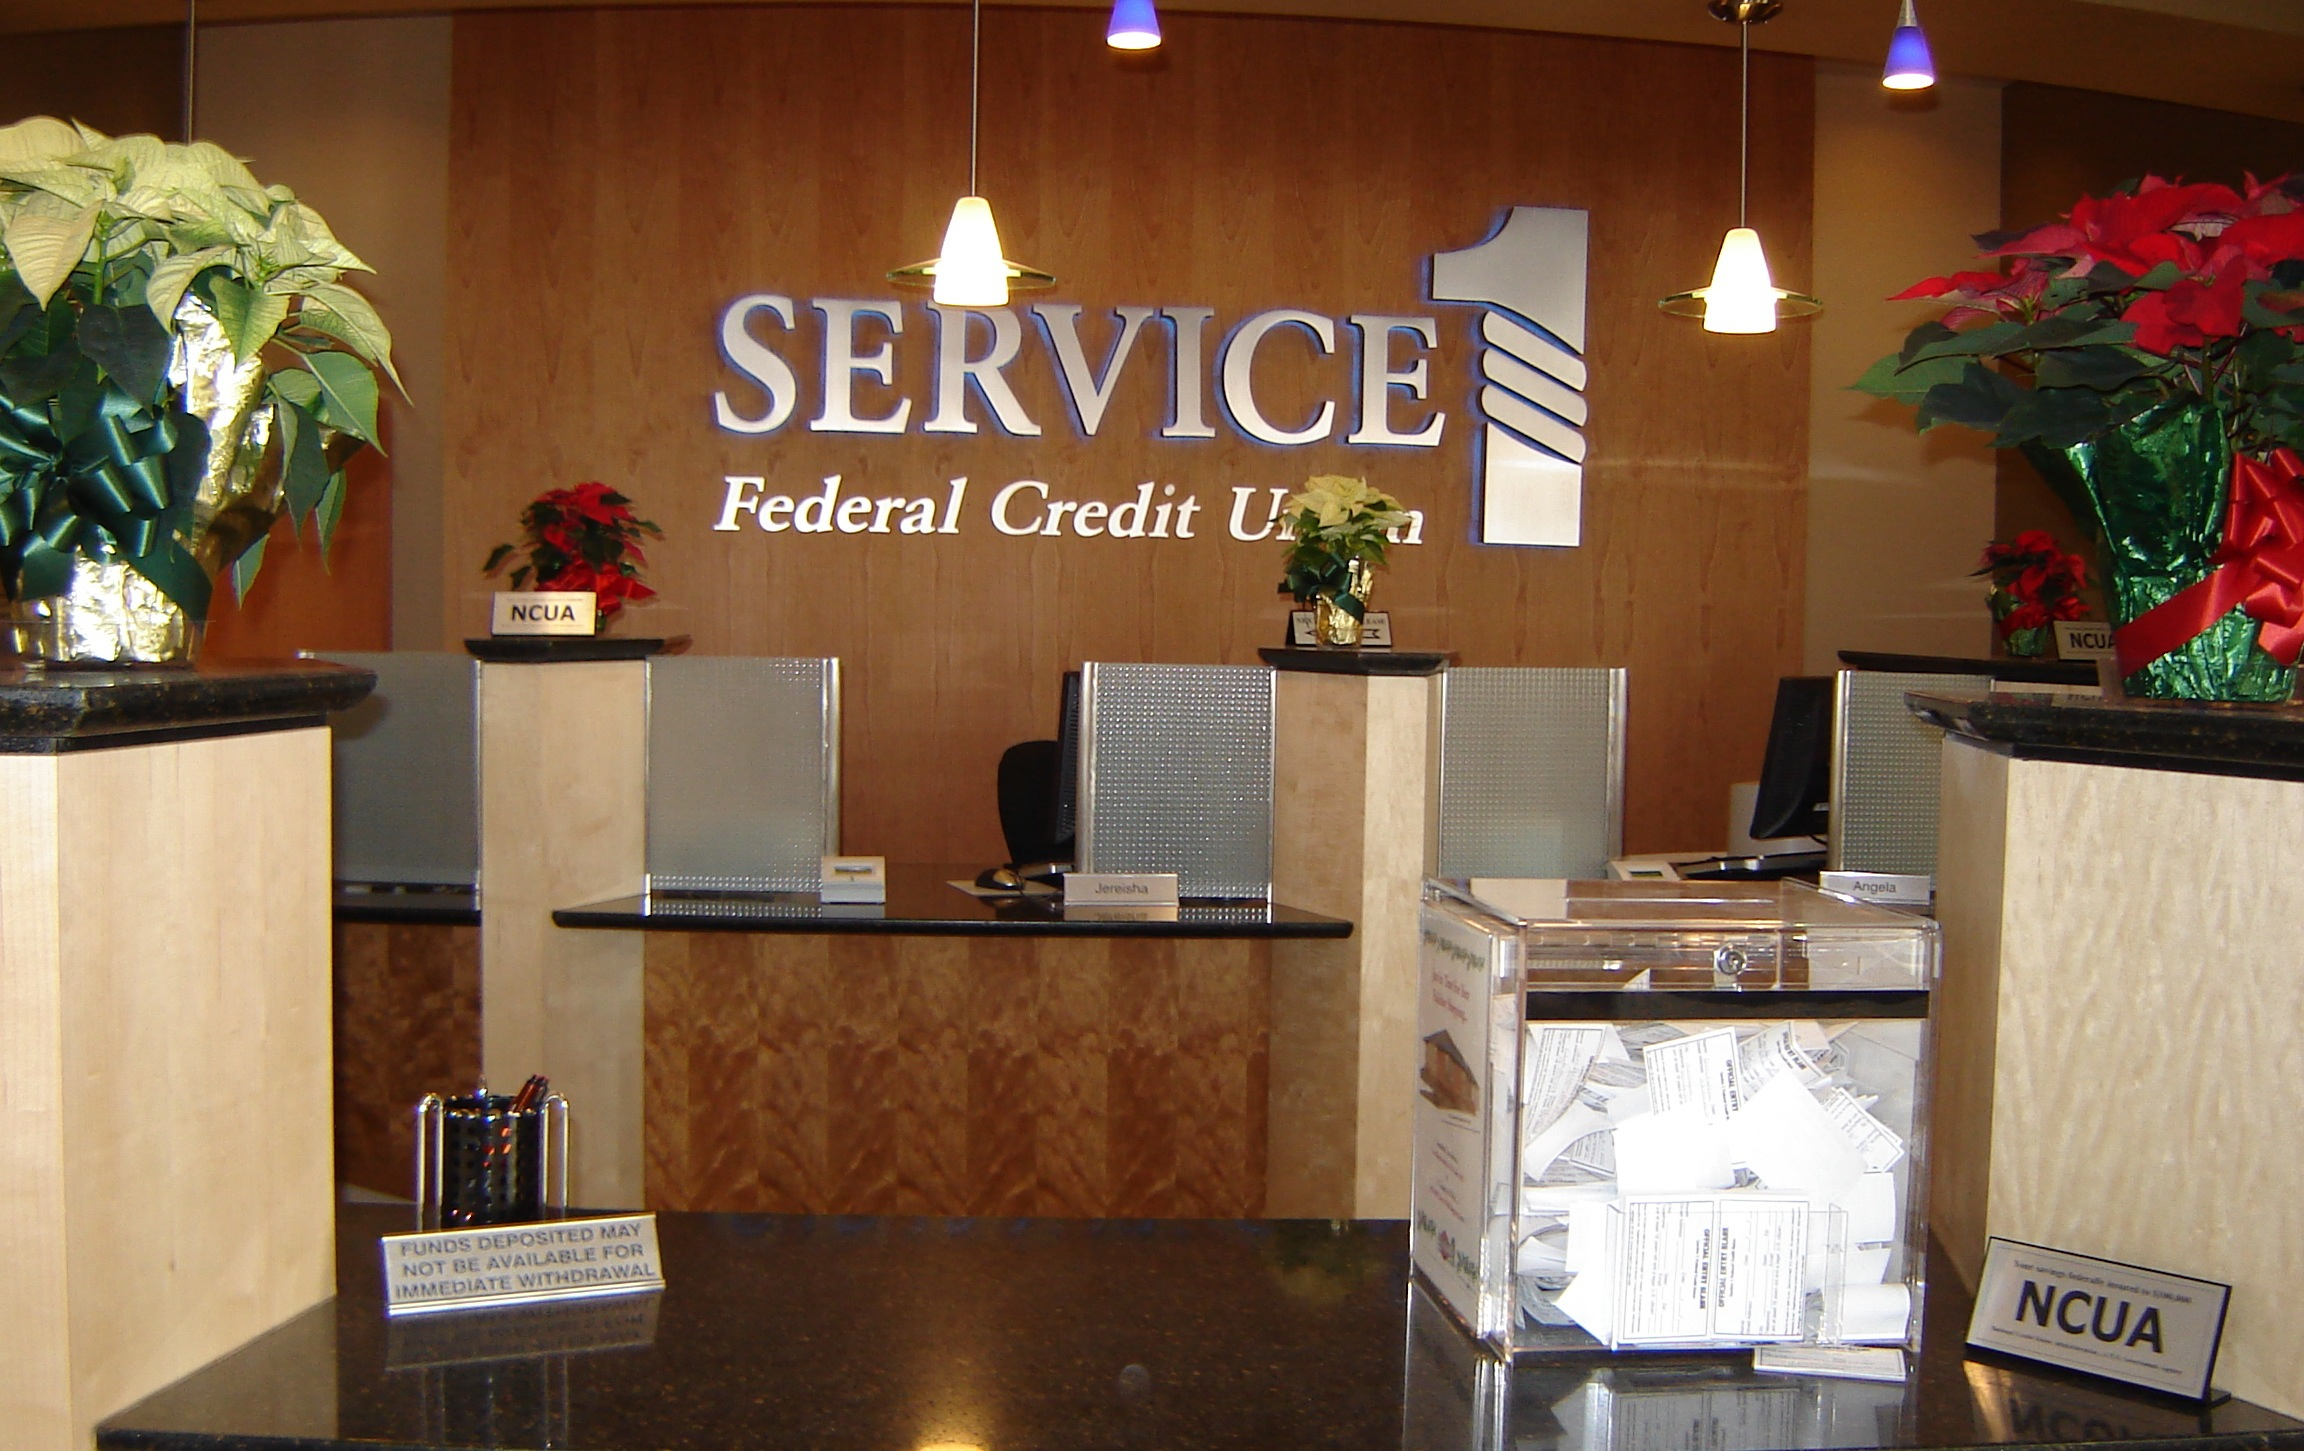 Service 1 Federal Credit Union